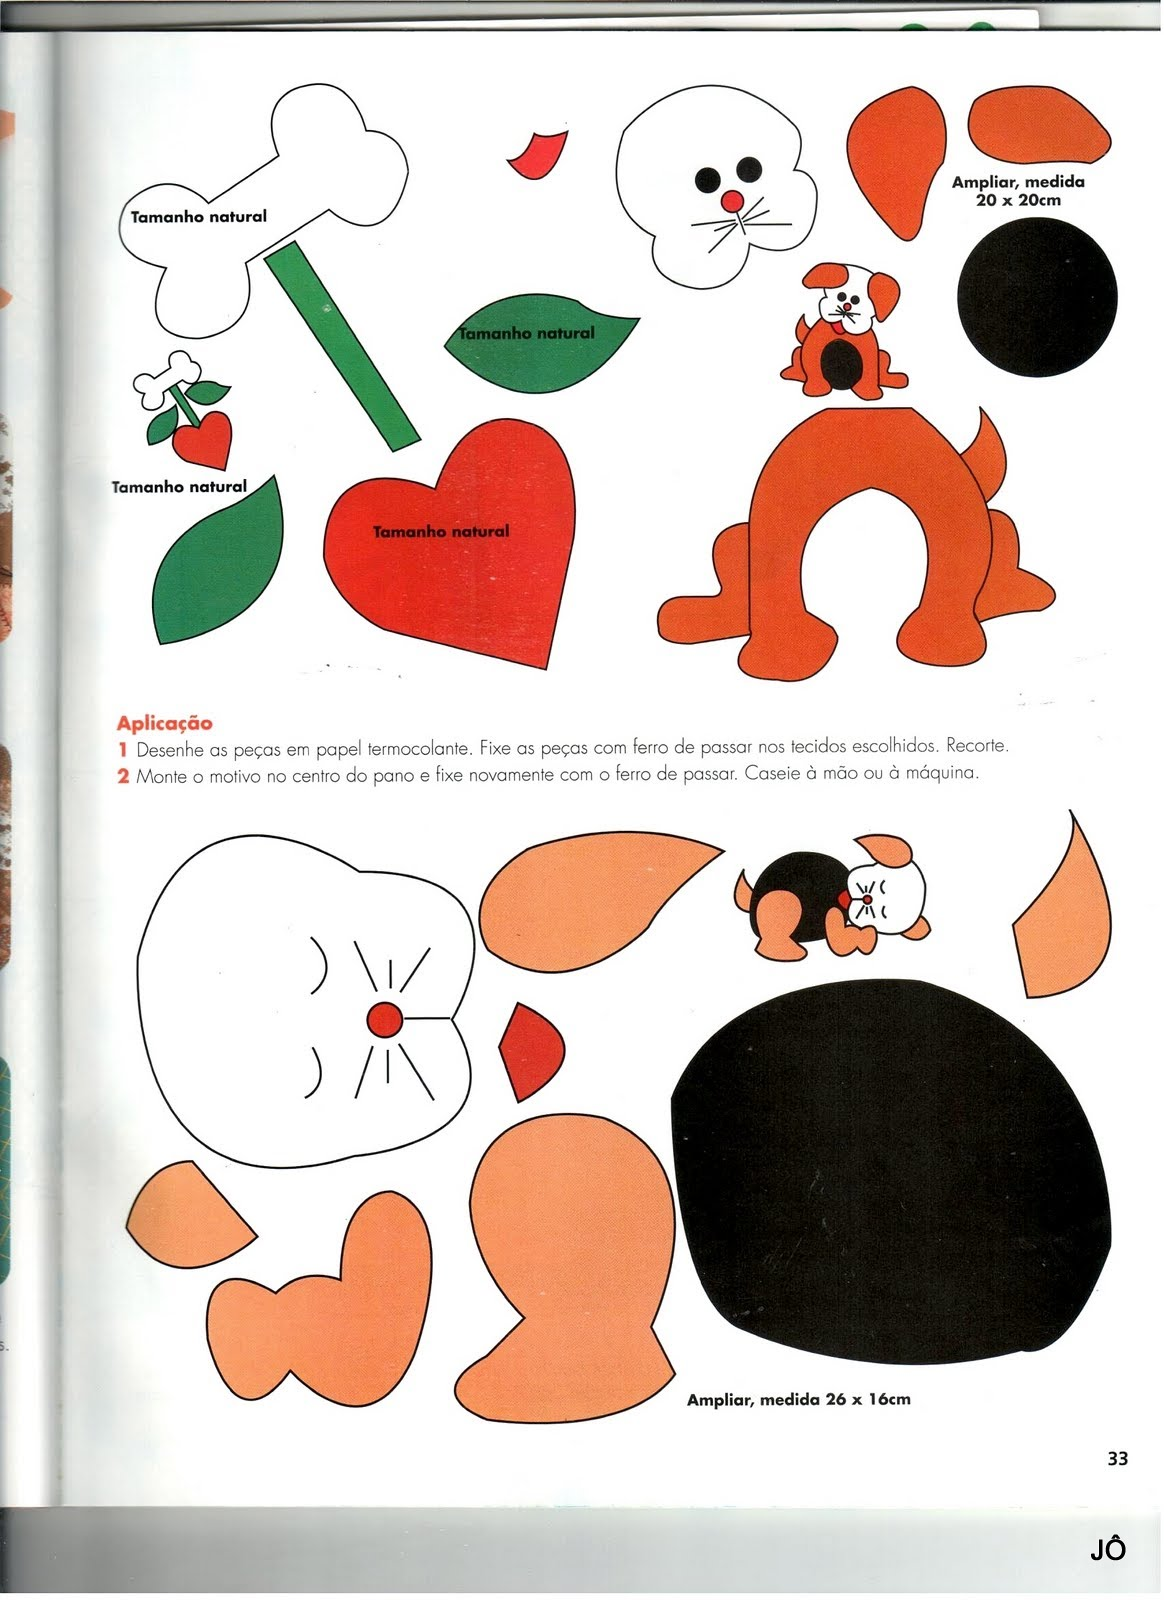 Ment On This Picture Feltro Frutas Moldes Patchwork Tecido Tomates